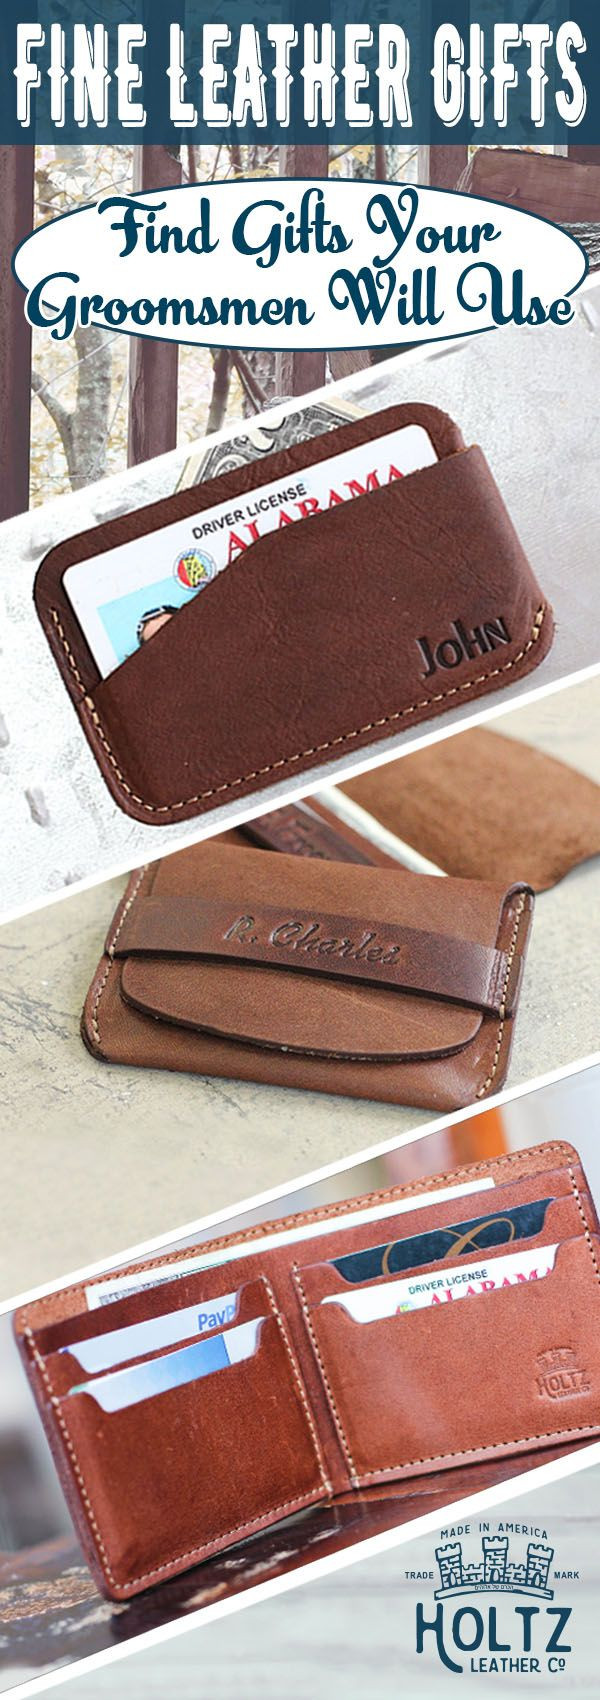 Best ideas about Leather Gift Ideas . Save or Pin Best 25 Leather ts ideas on Pinterest Now.